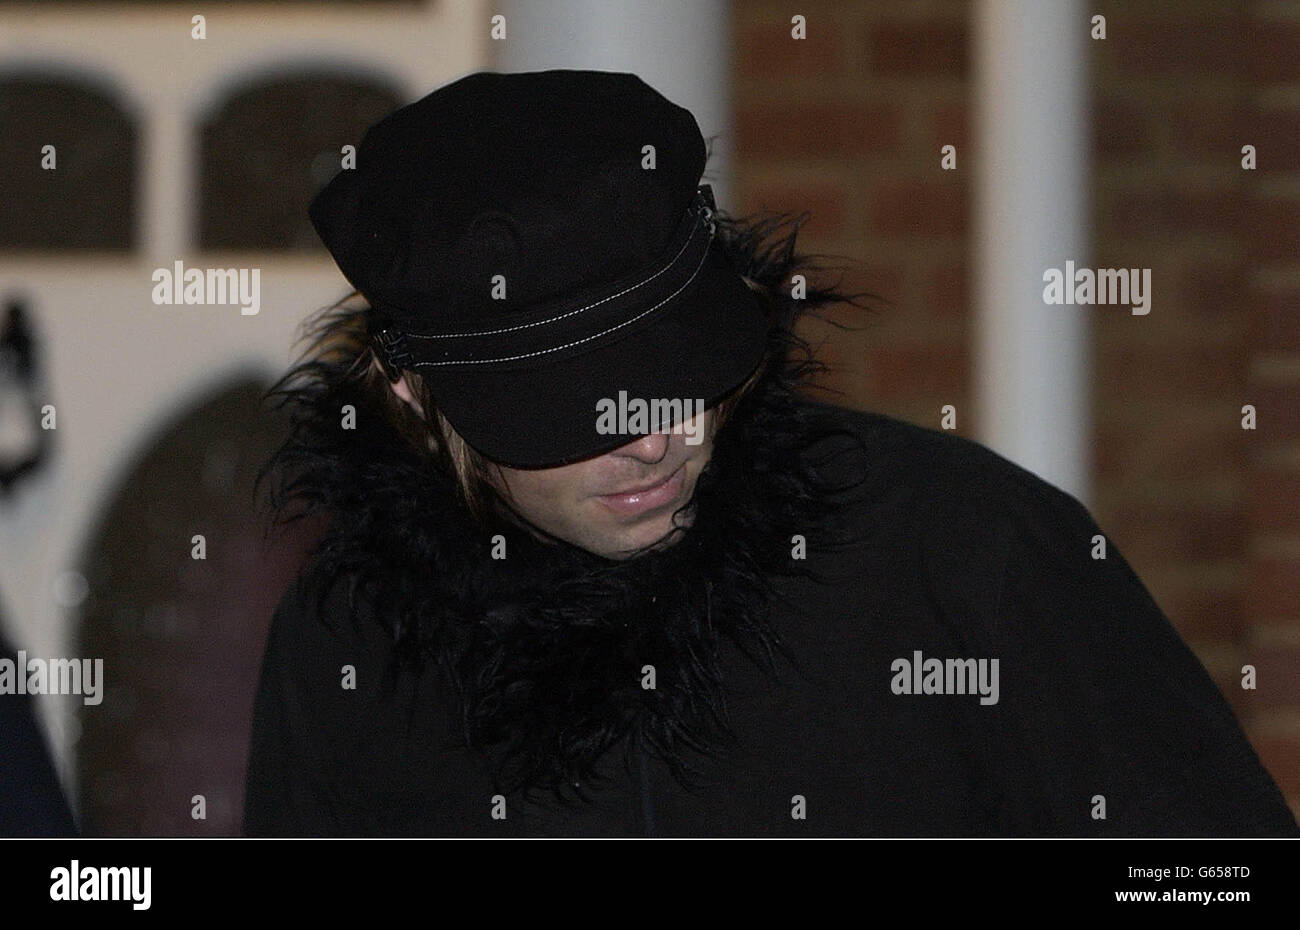 Liam Gallagher - Stock Image